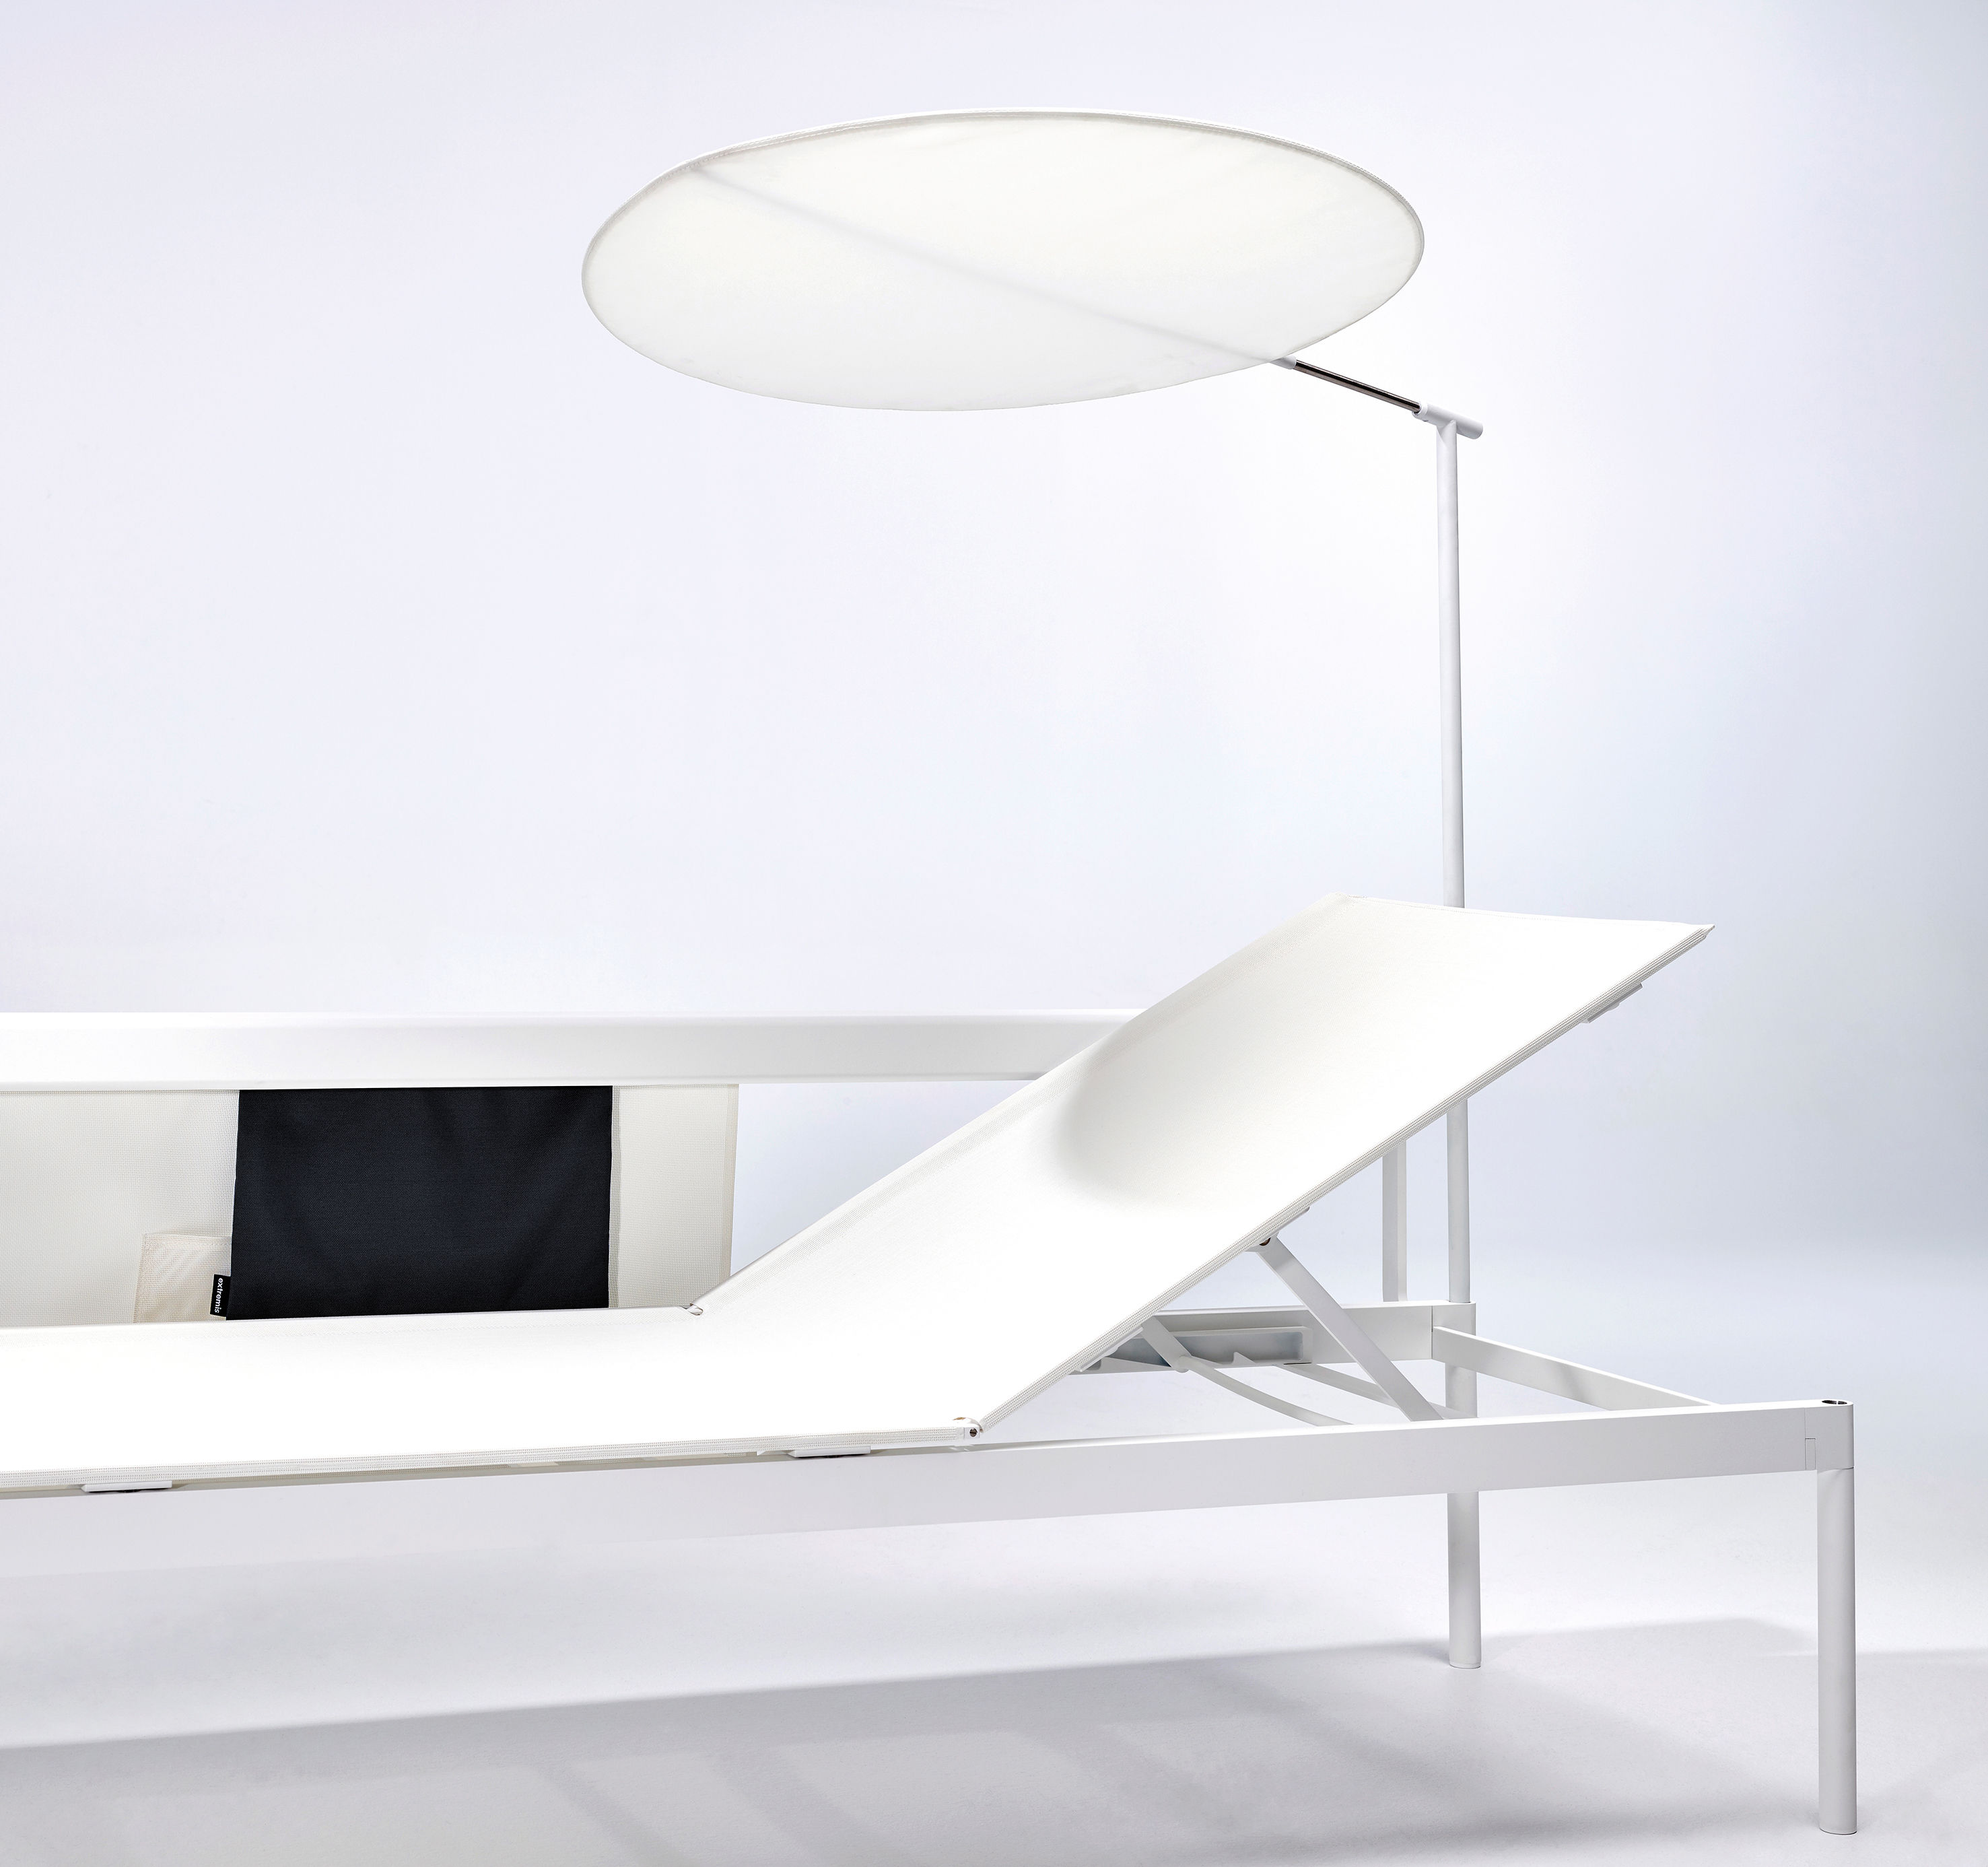 pare soleil extremis non lumineux blanc m tal h 150 x 75 made in design. Black Bedroom Furniture Sets. Home Design Ideas